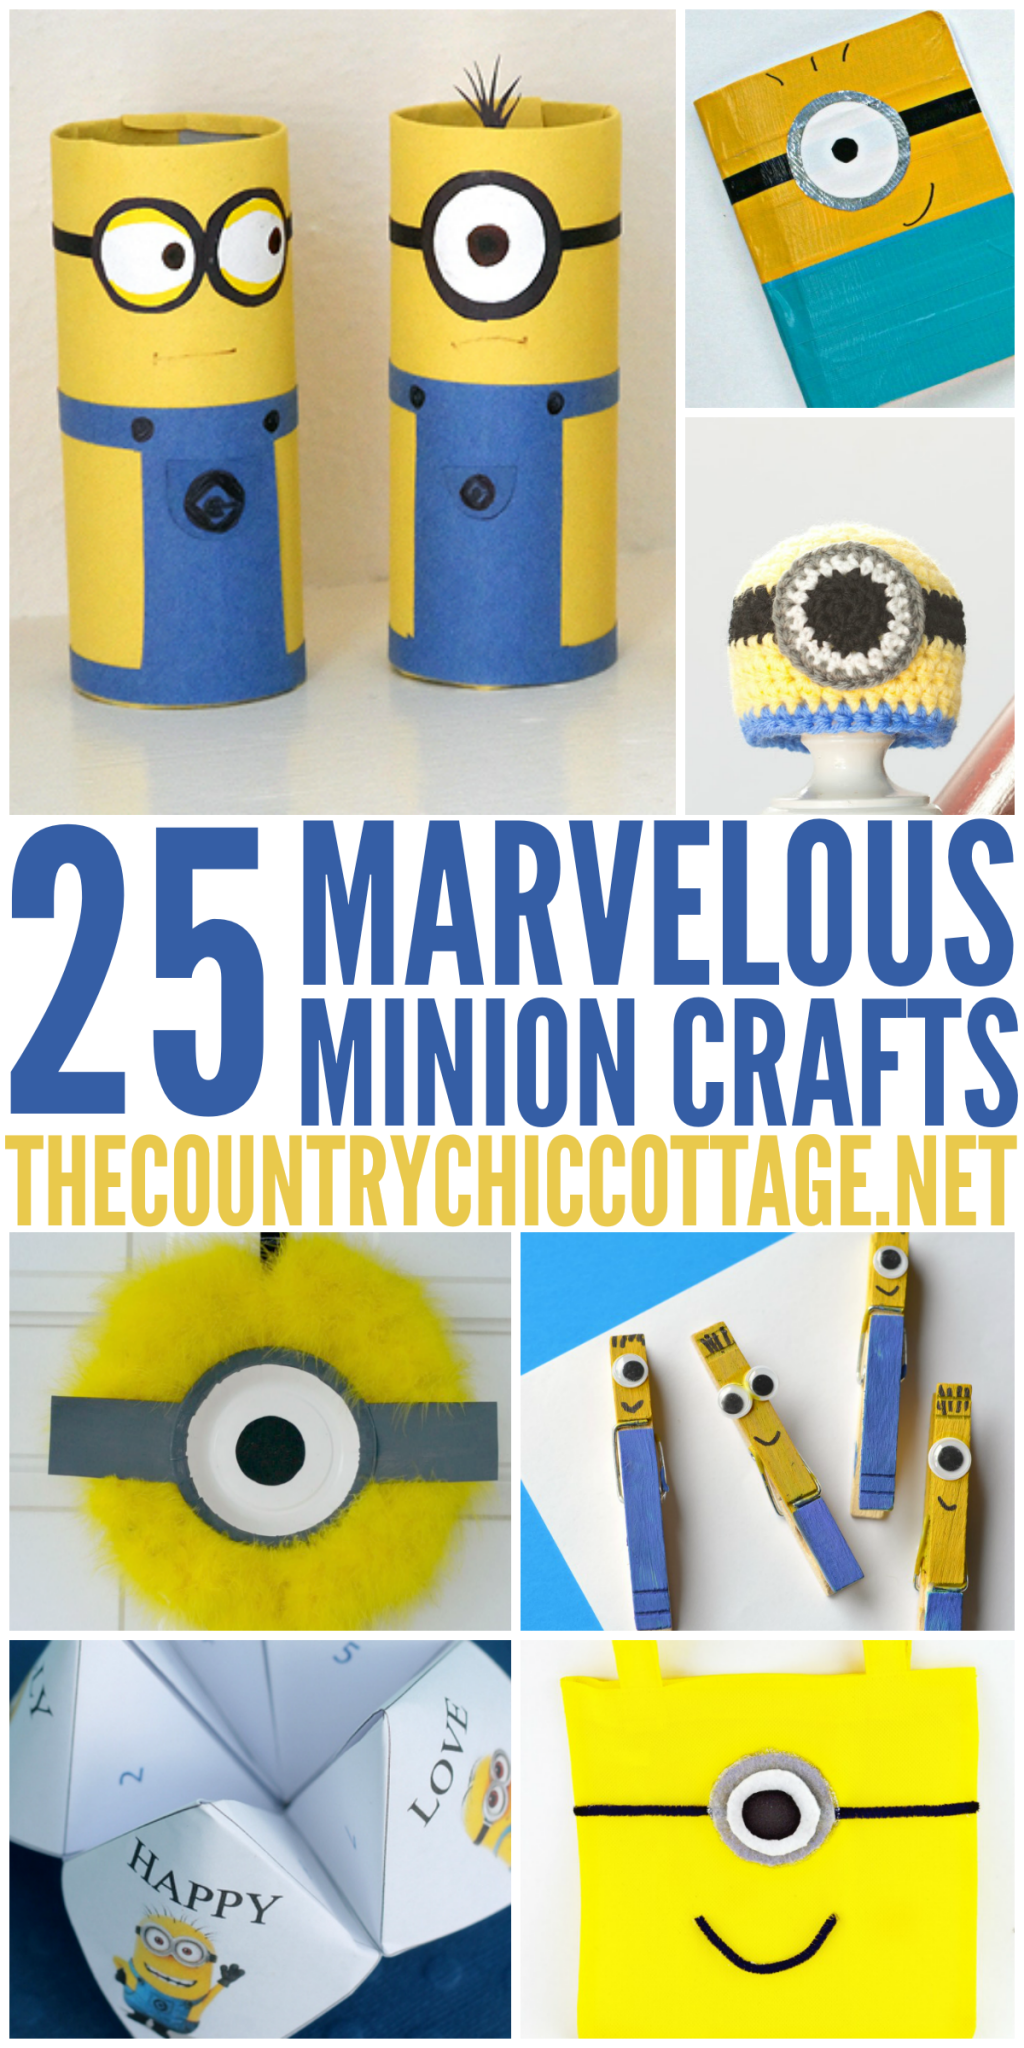 Make one or more of these fun minion crafts for a kid or adult in your life. Every minion lover will love these great craft ideas!